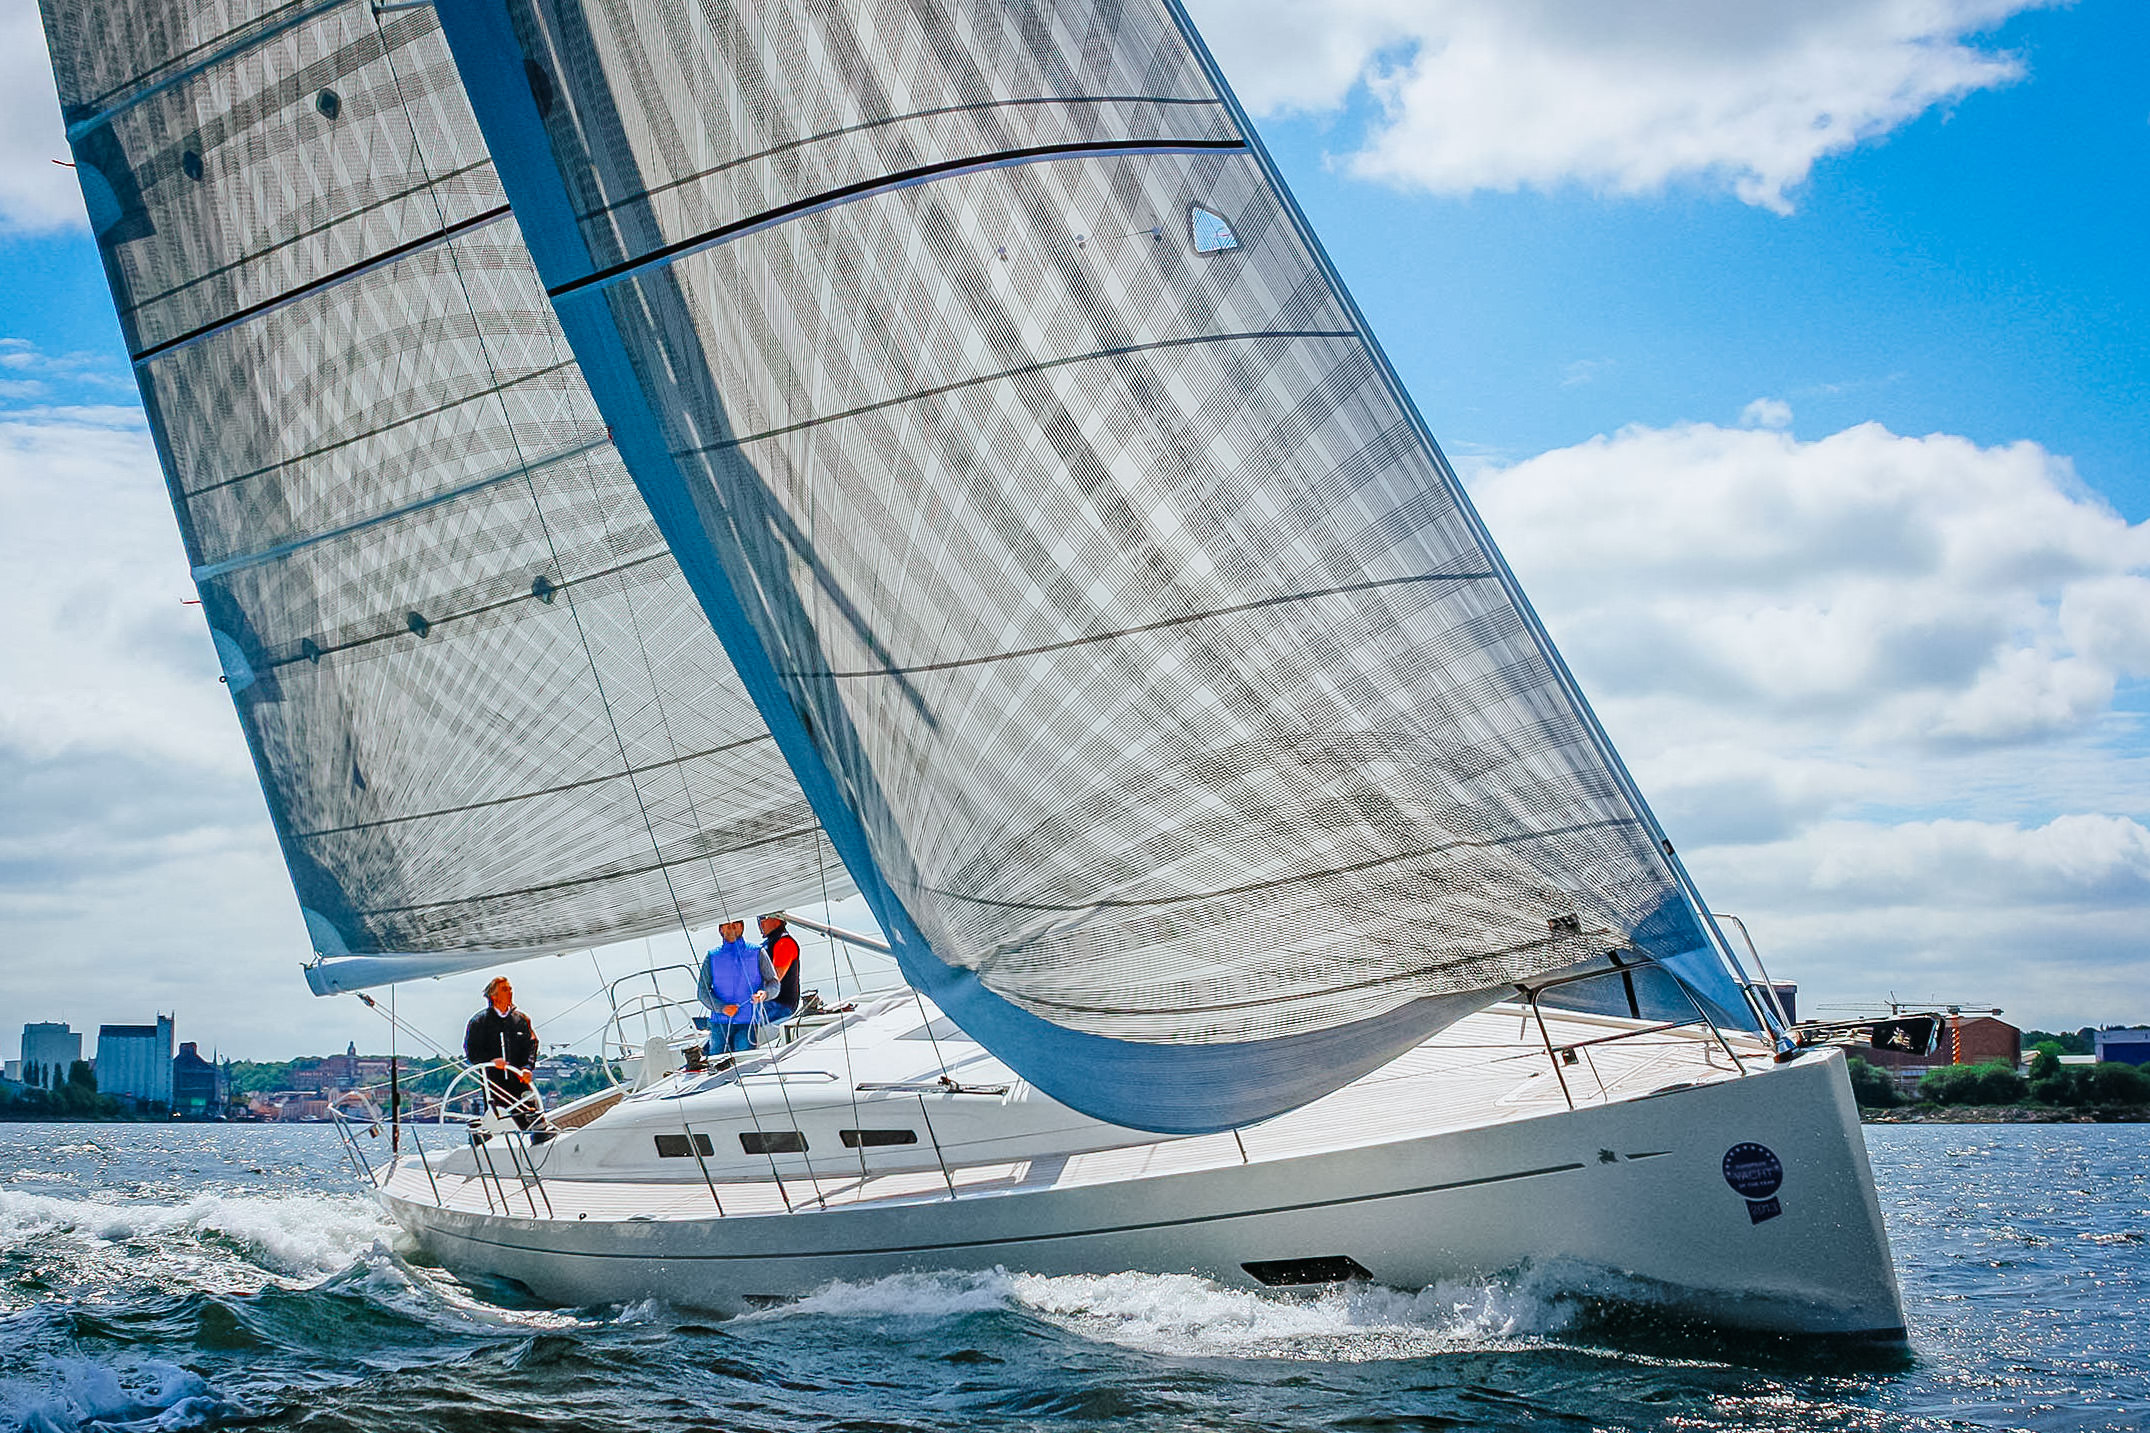 Italia 13.98 with X-Drive carbon sails for both cruising and club racing.